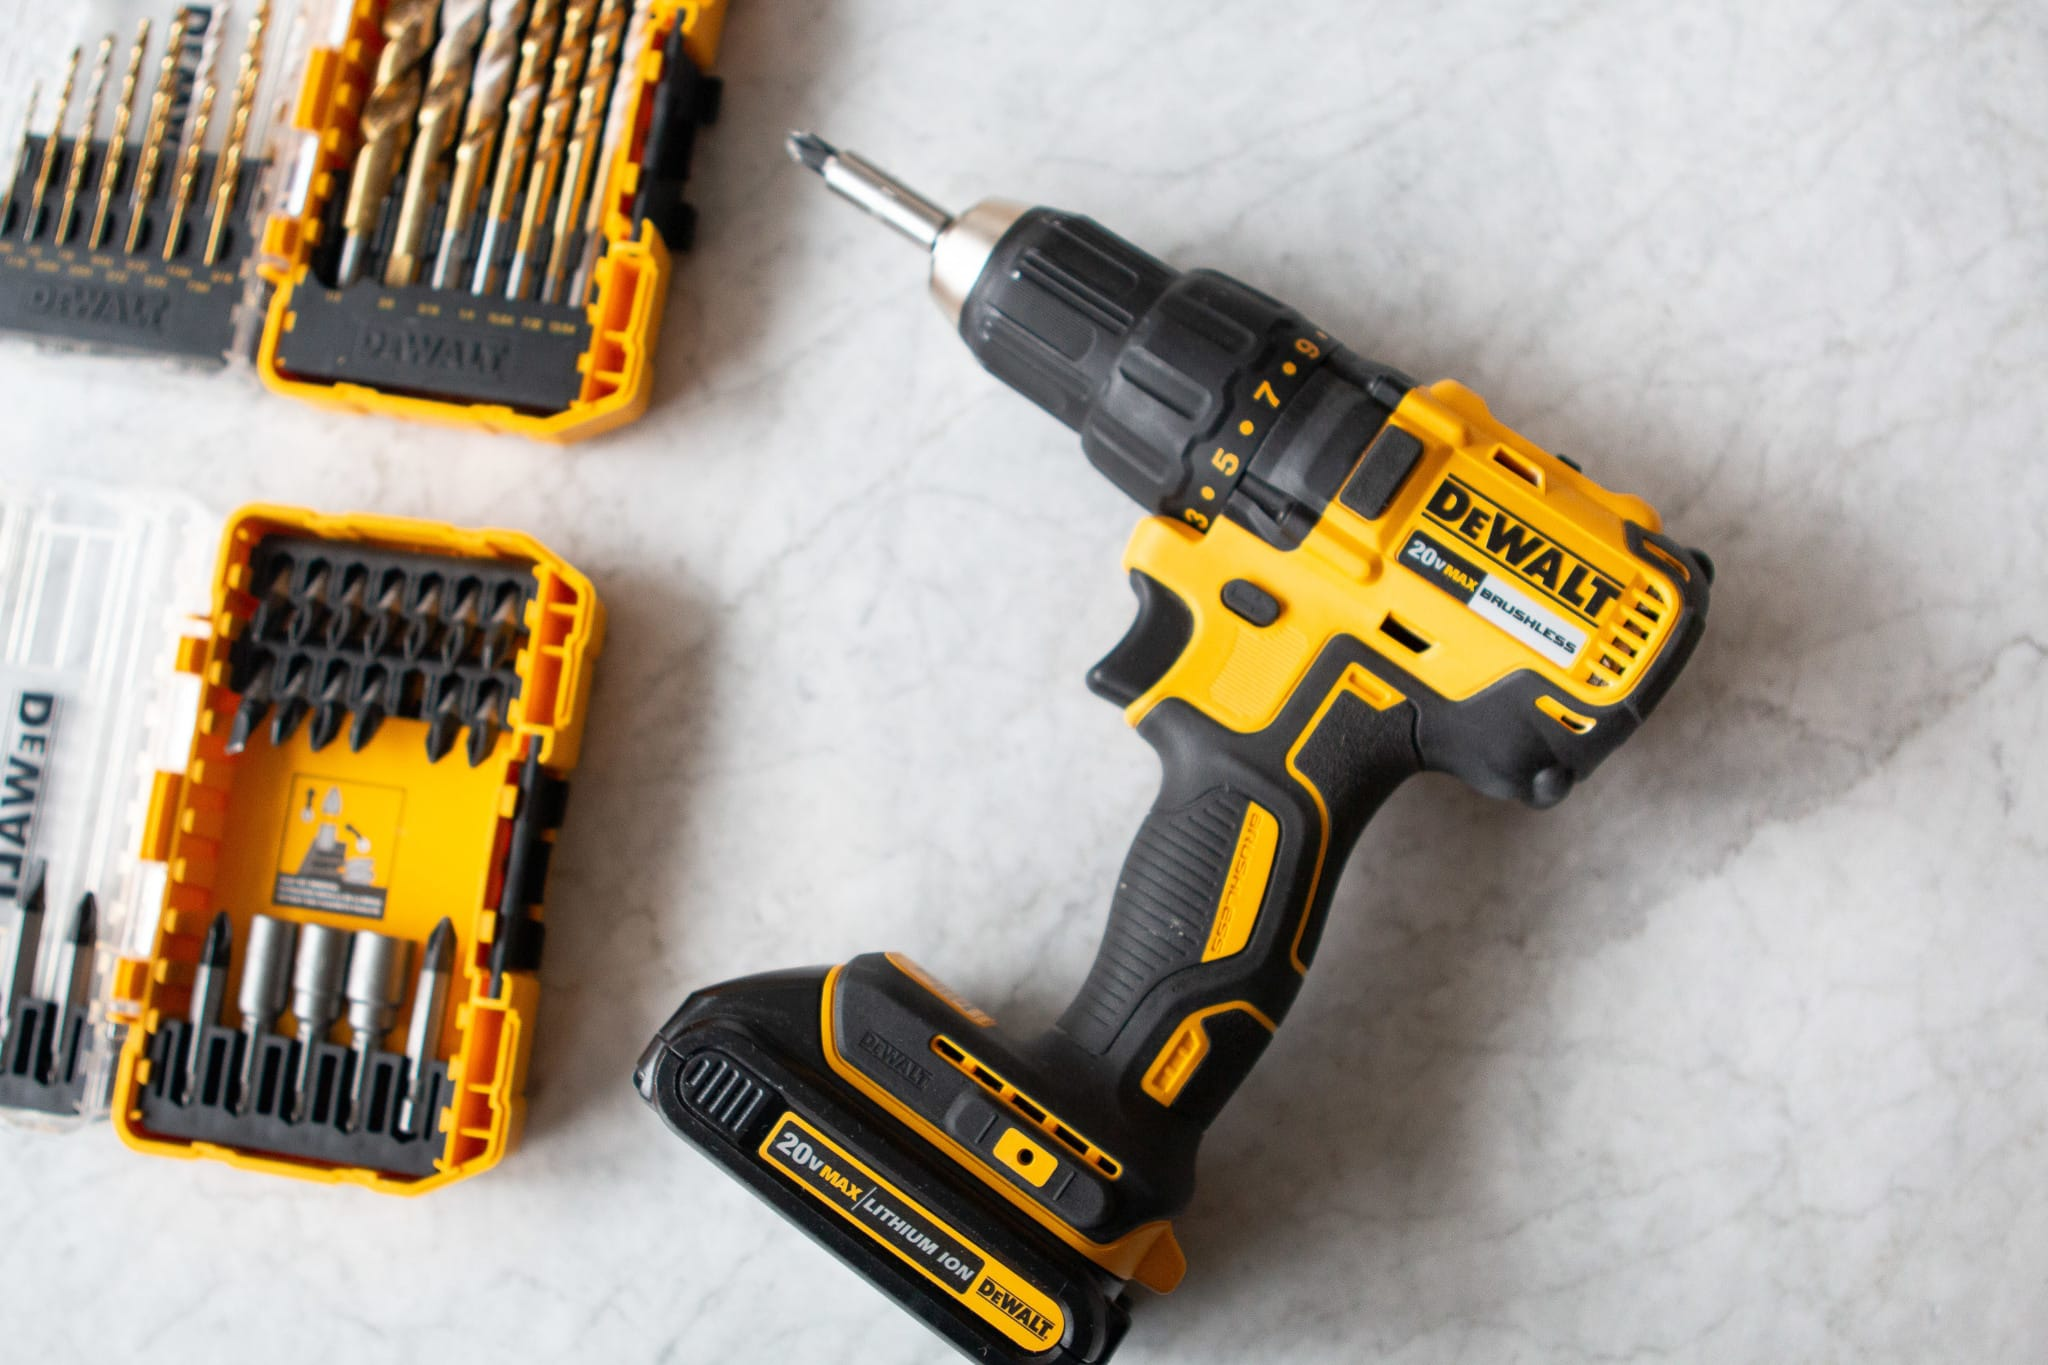 Power drill and bit set